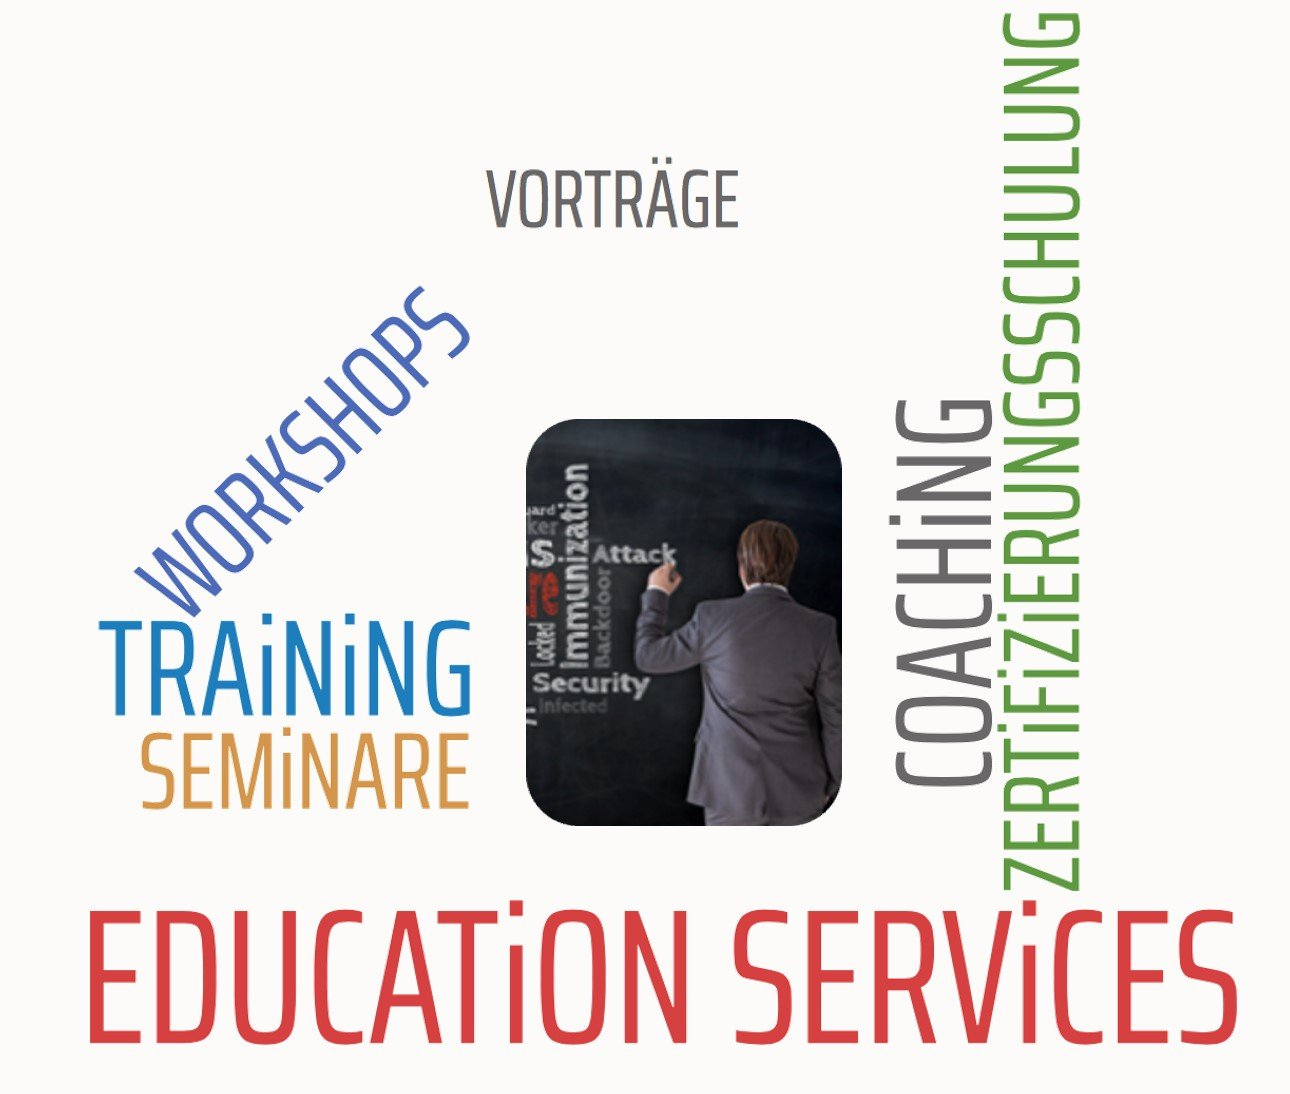 WordCloud_EducationServices